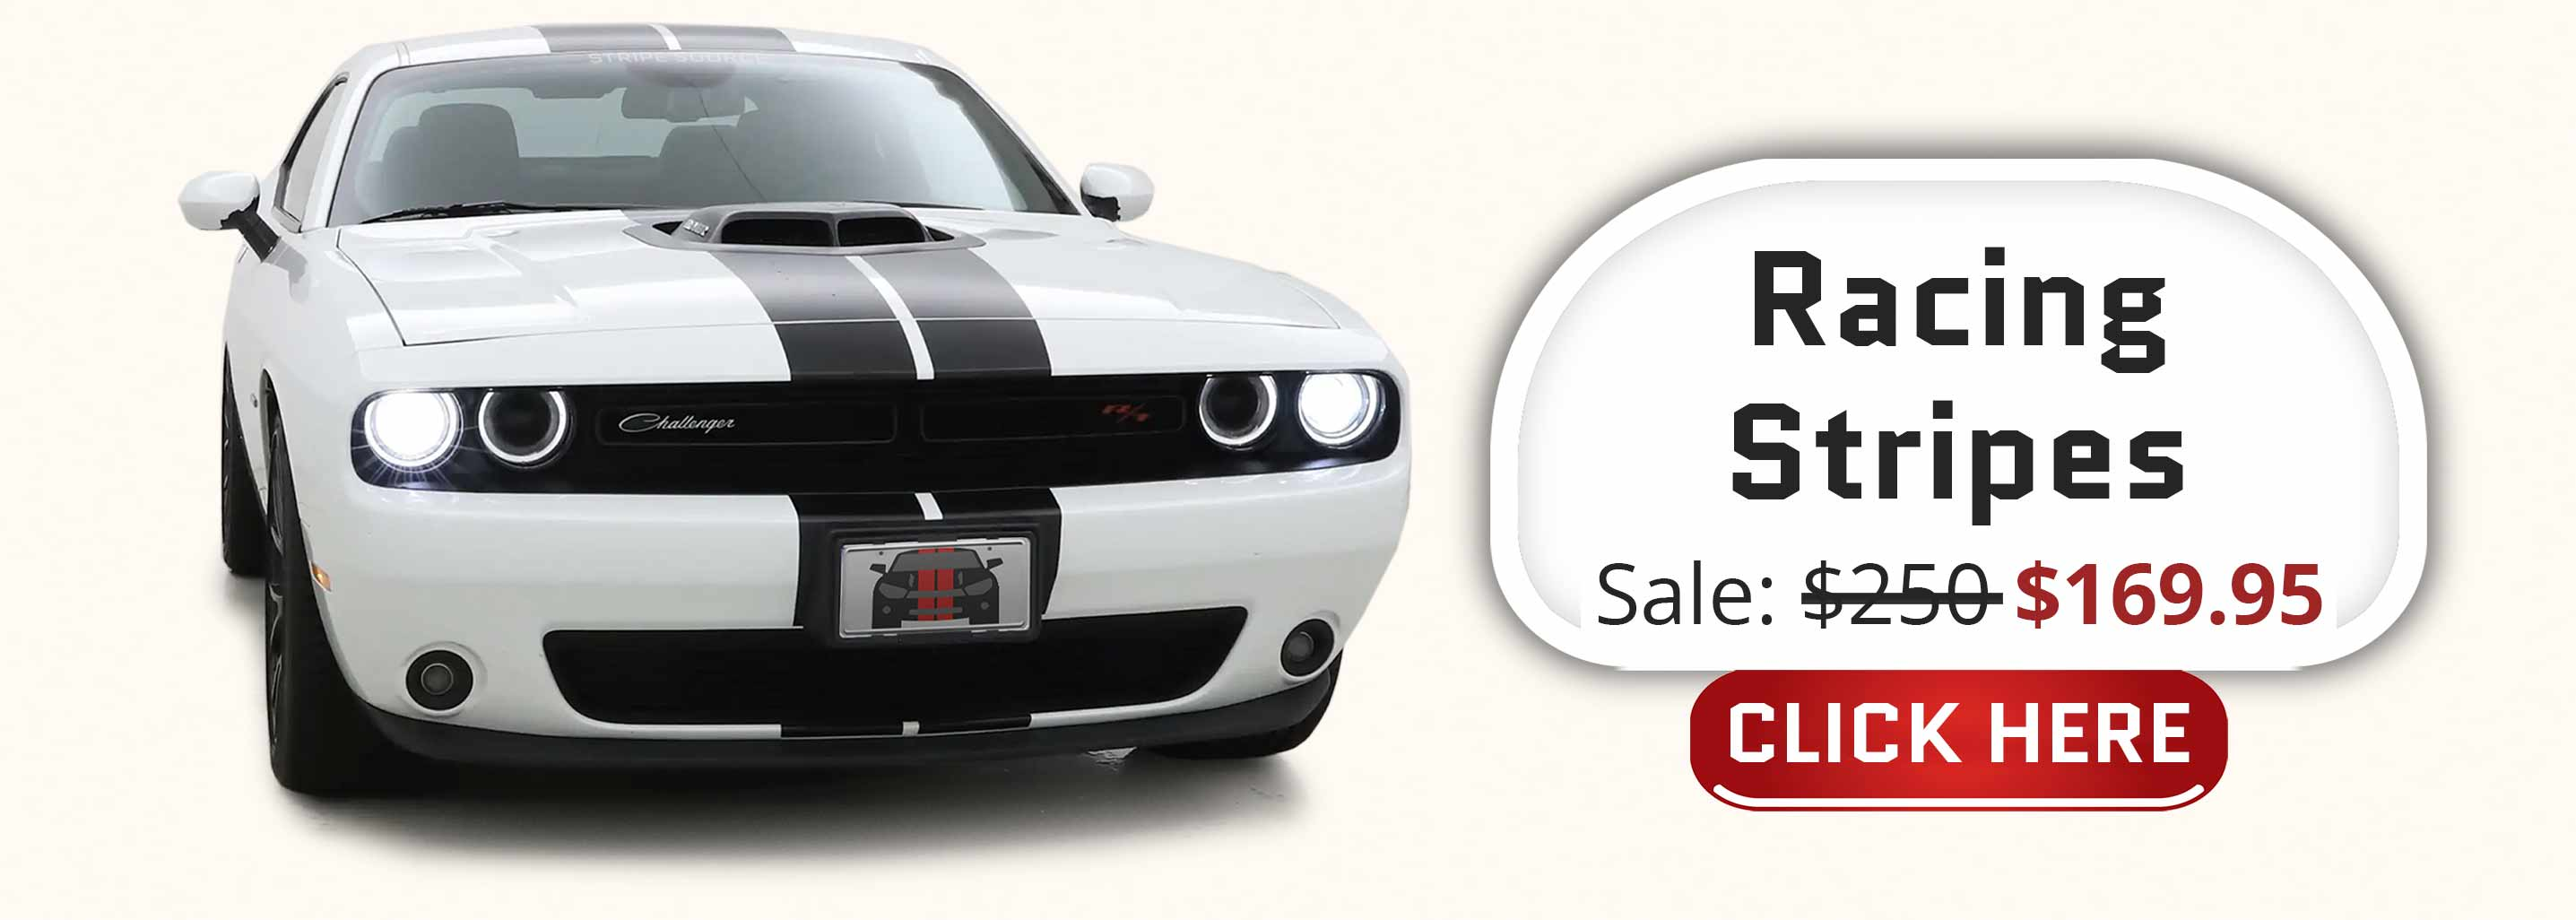 Shaker challenger with a set of black dual twin racing rally stripes 2015 2016 2017 2018 2019 2020 2021